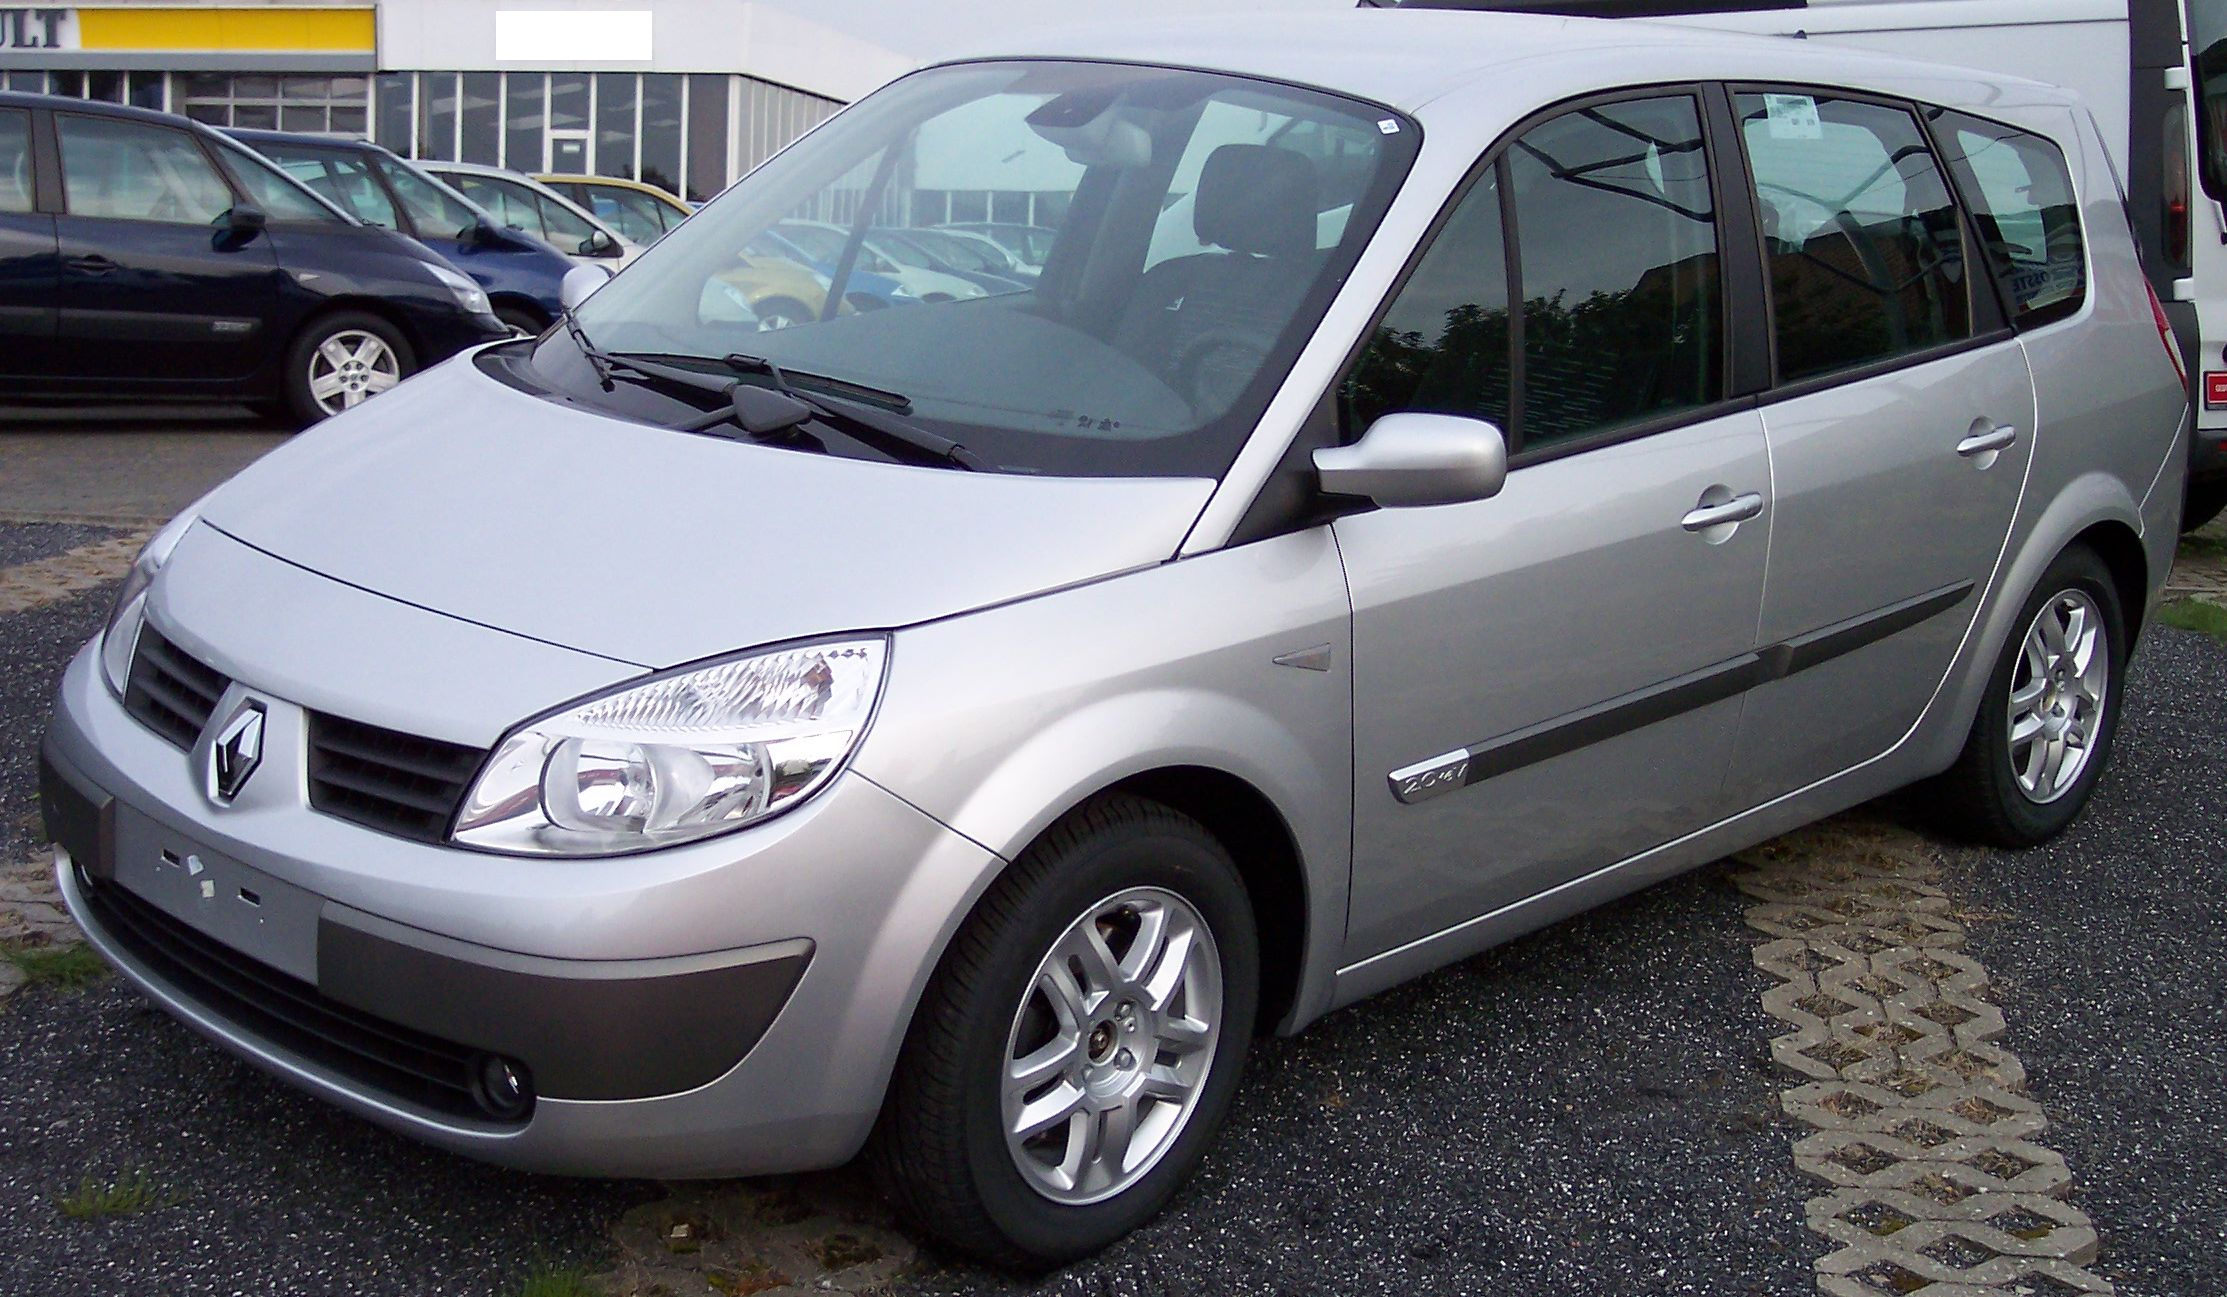 2005RenaultScenic-sellmy